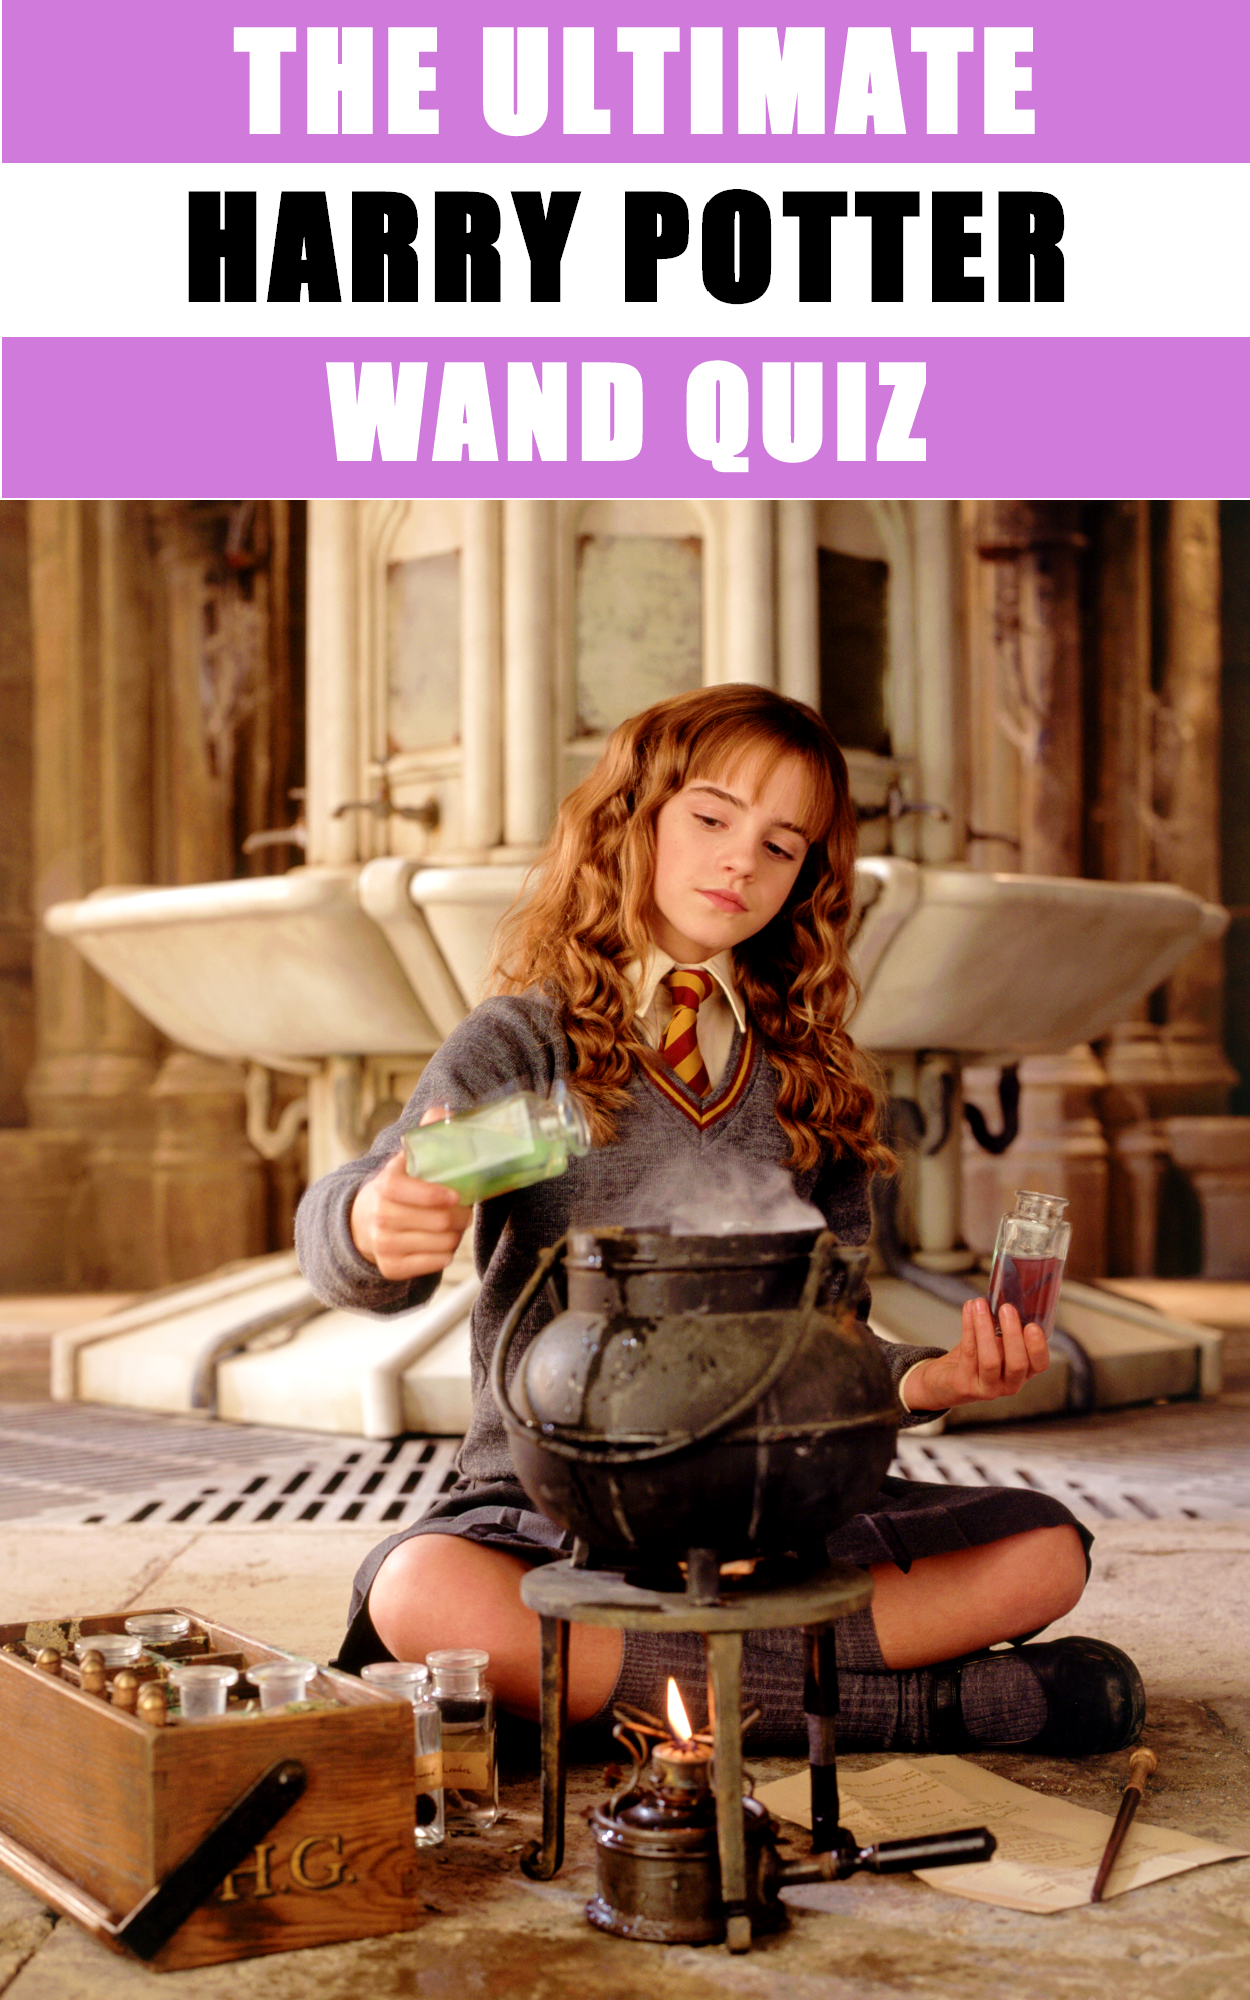 The Ultimate Harry Potter Wand Quiz Harry Potter Wand Quiz Harry Potter Character Quiz Harry Potter Characters